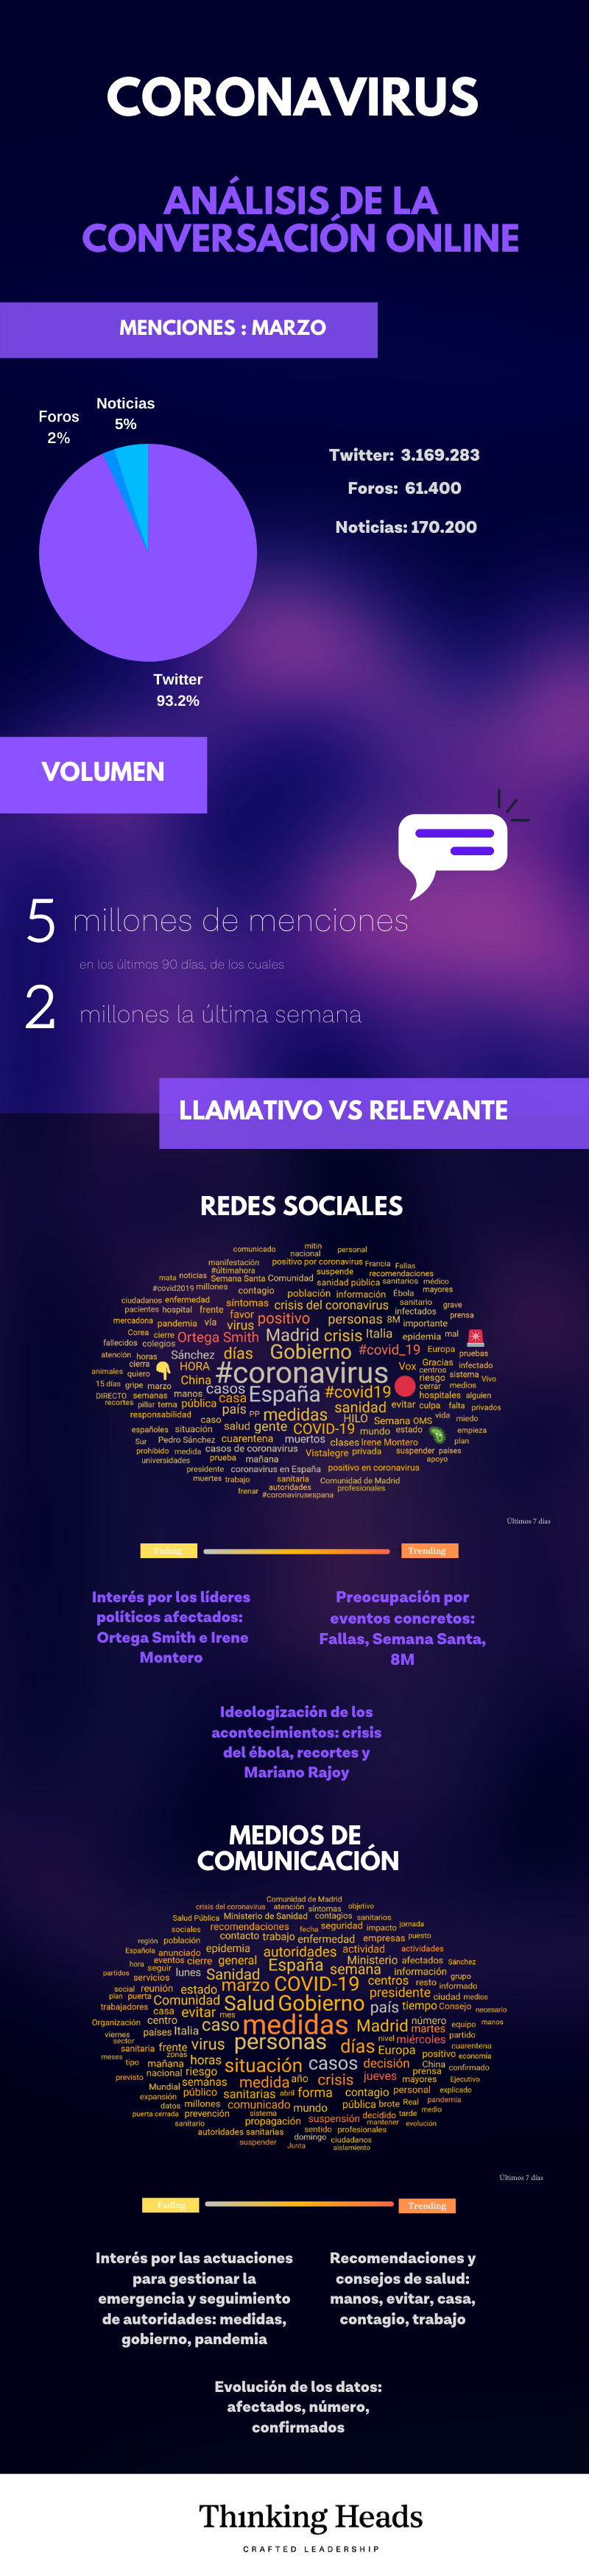 analisis-coronavirus-conversacion-digital-thinking-heads